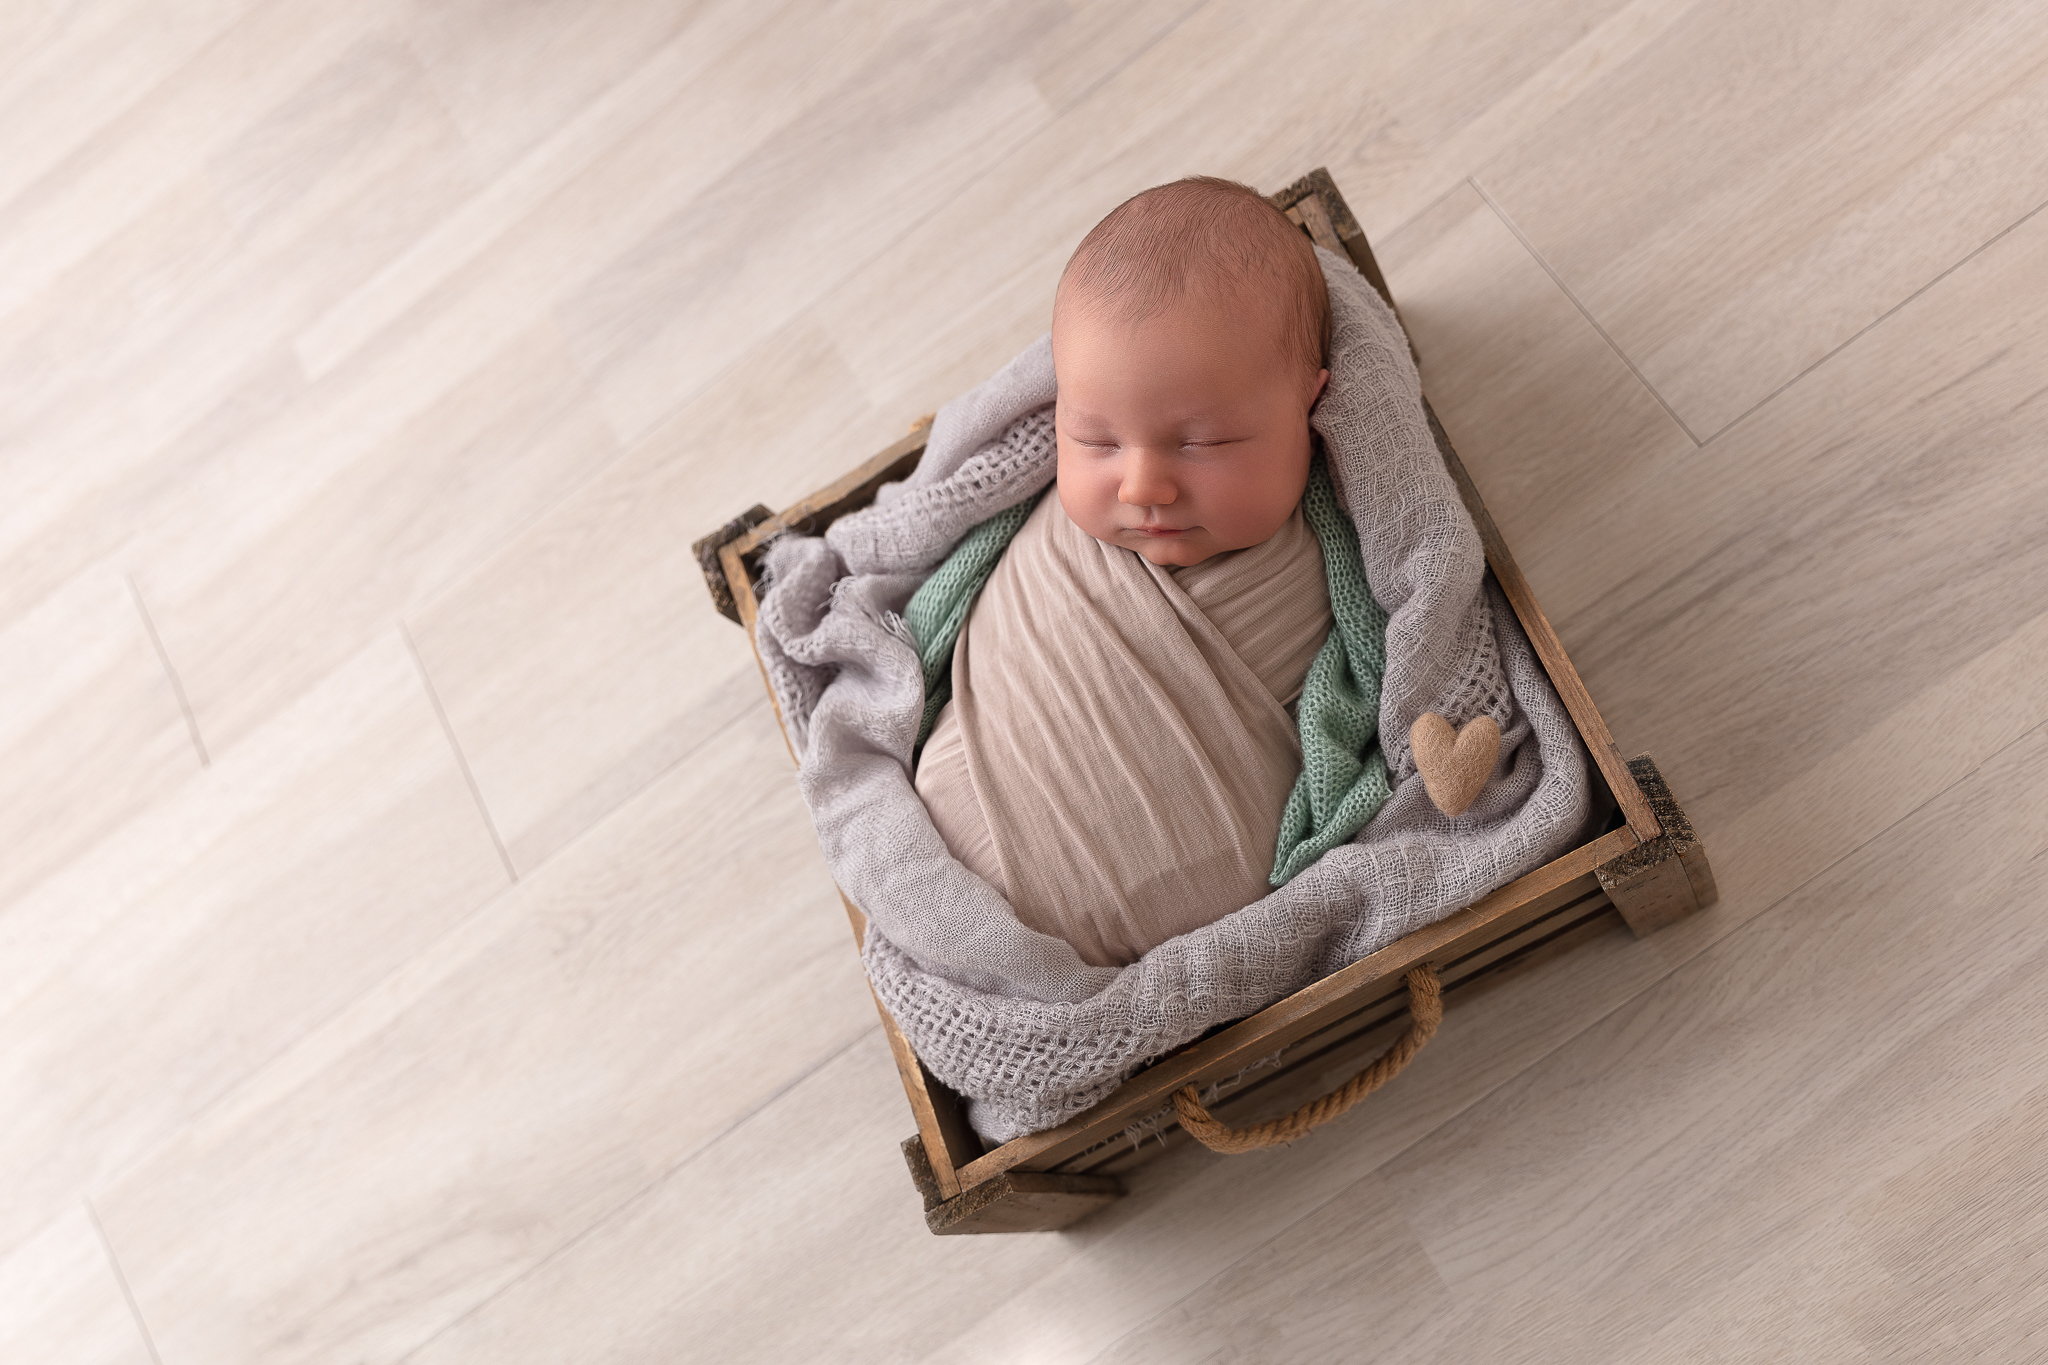 baby-newborn-photography-adelaide-family-props